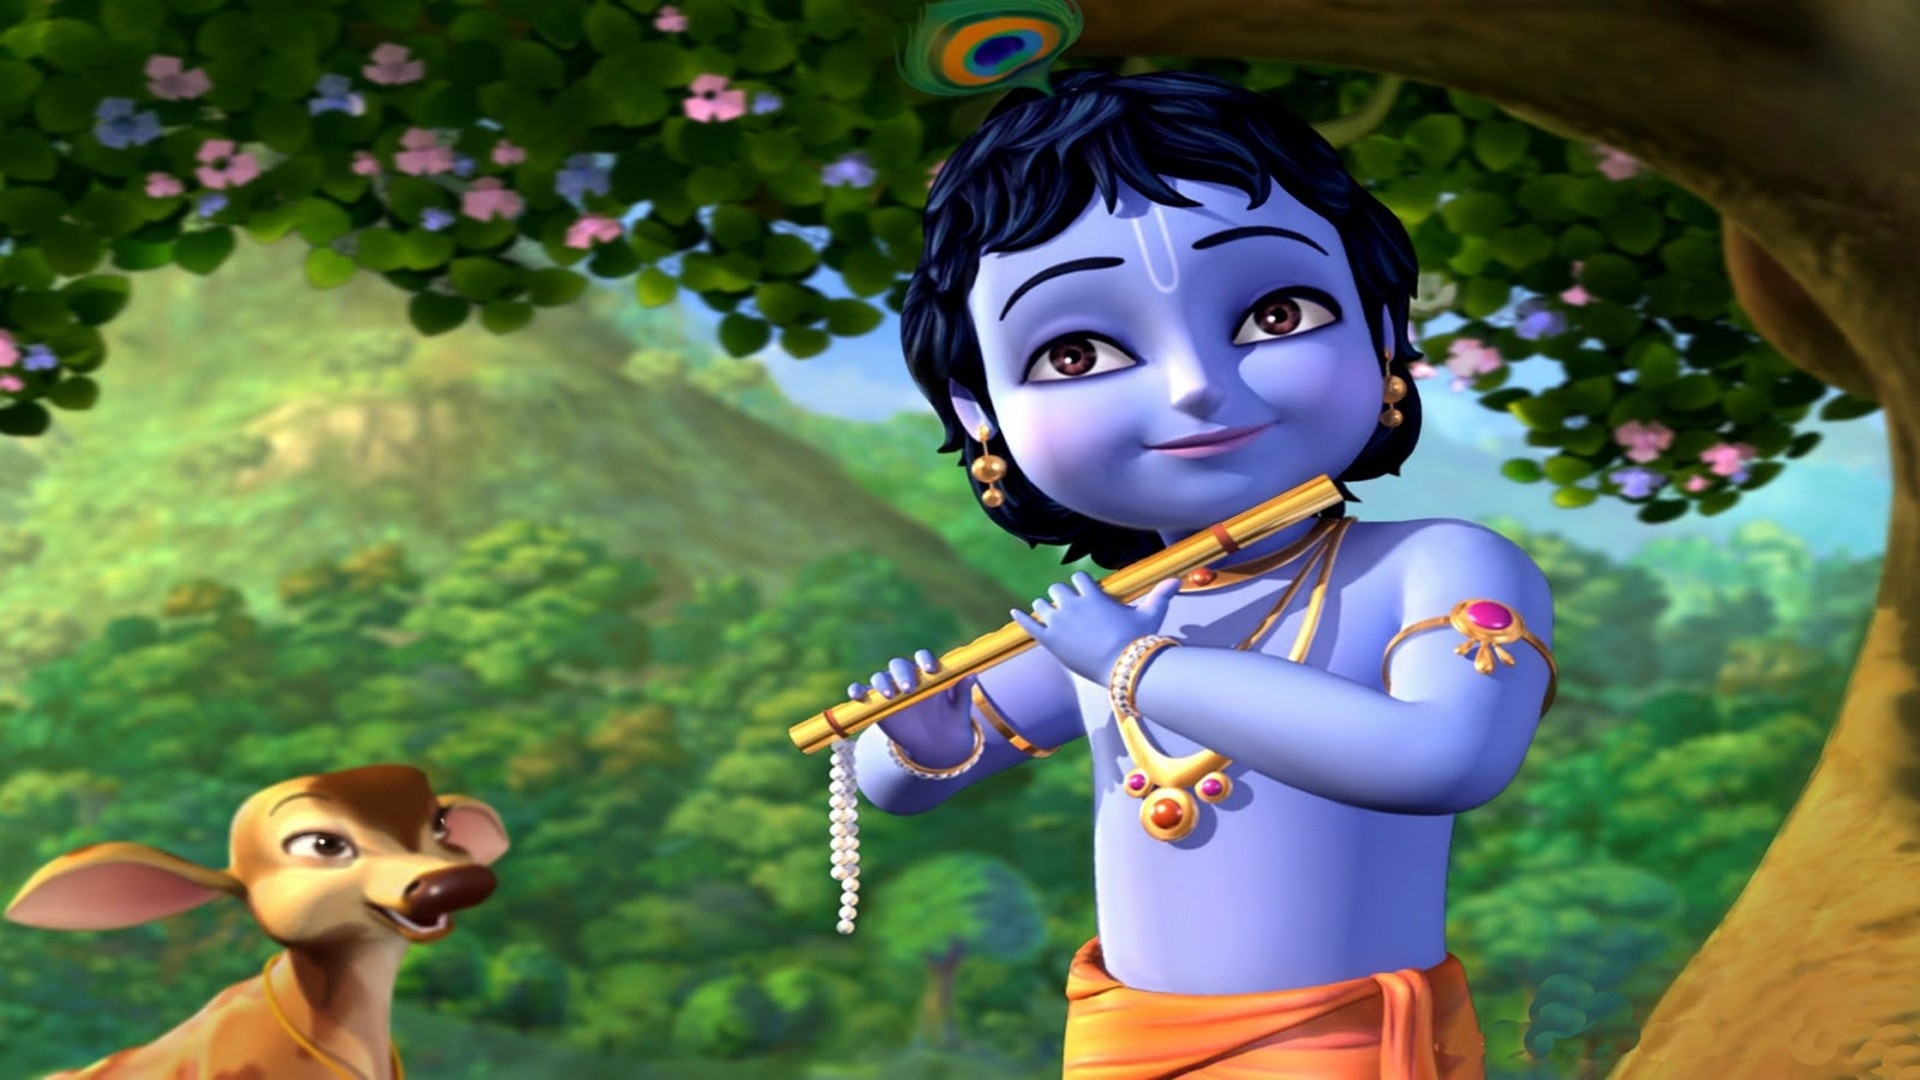 Lord Krishna Cartoon High Definition Wallpapers Little